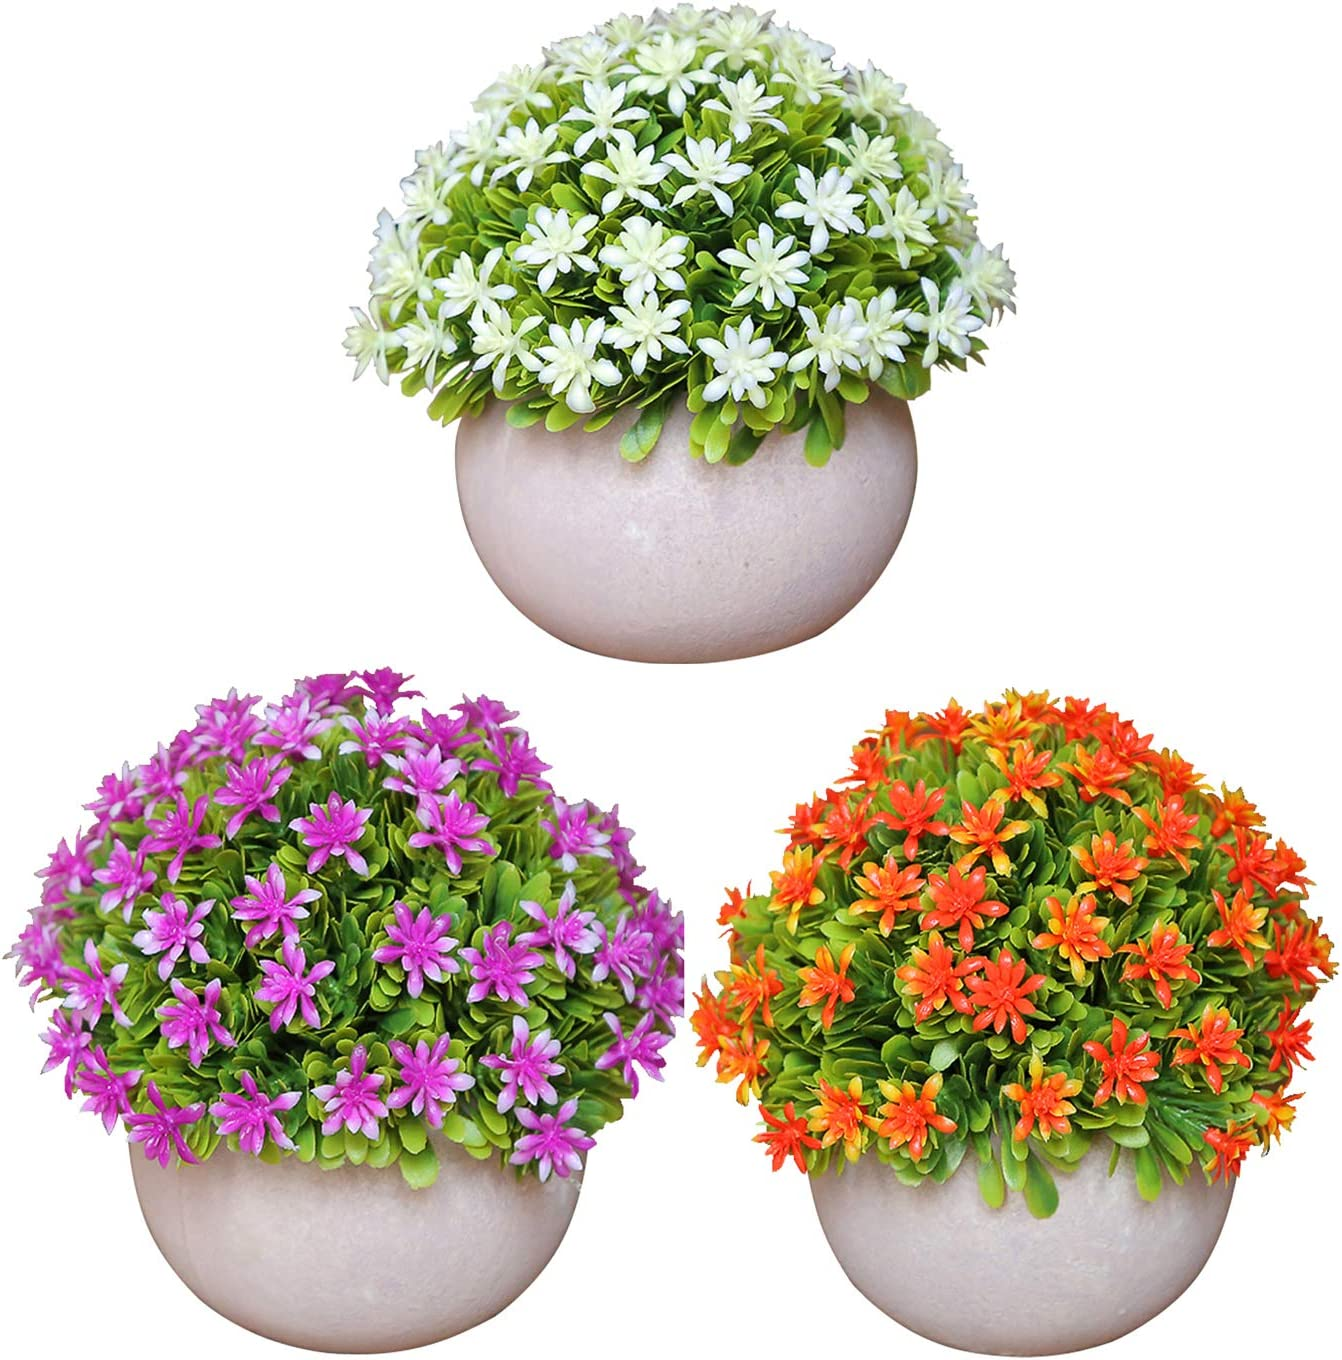 ZWCIBN 3 Pcs Mini Potted Plants, Small Fake Succulents, Modern Artificial House Plants & Flowers for Bathroom Bedroom Decor Indoor, Kitchen Decorations Above Cabinets Desk Decorations (White)